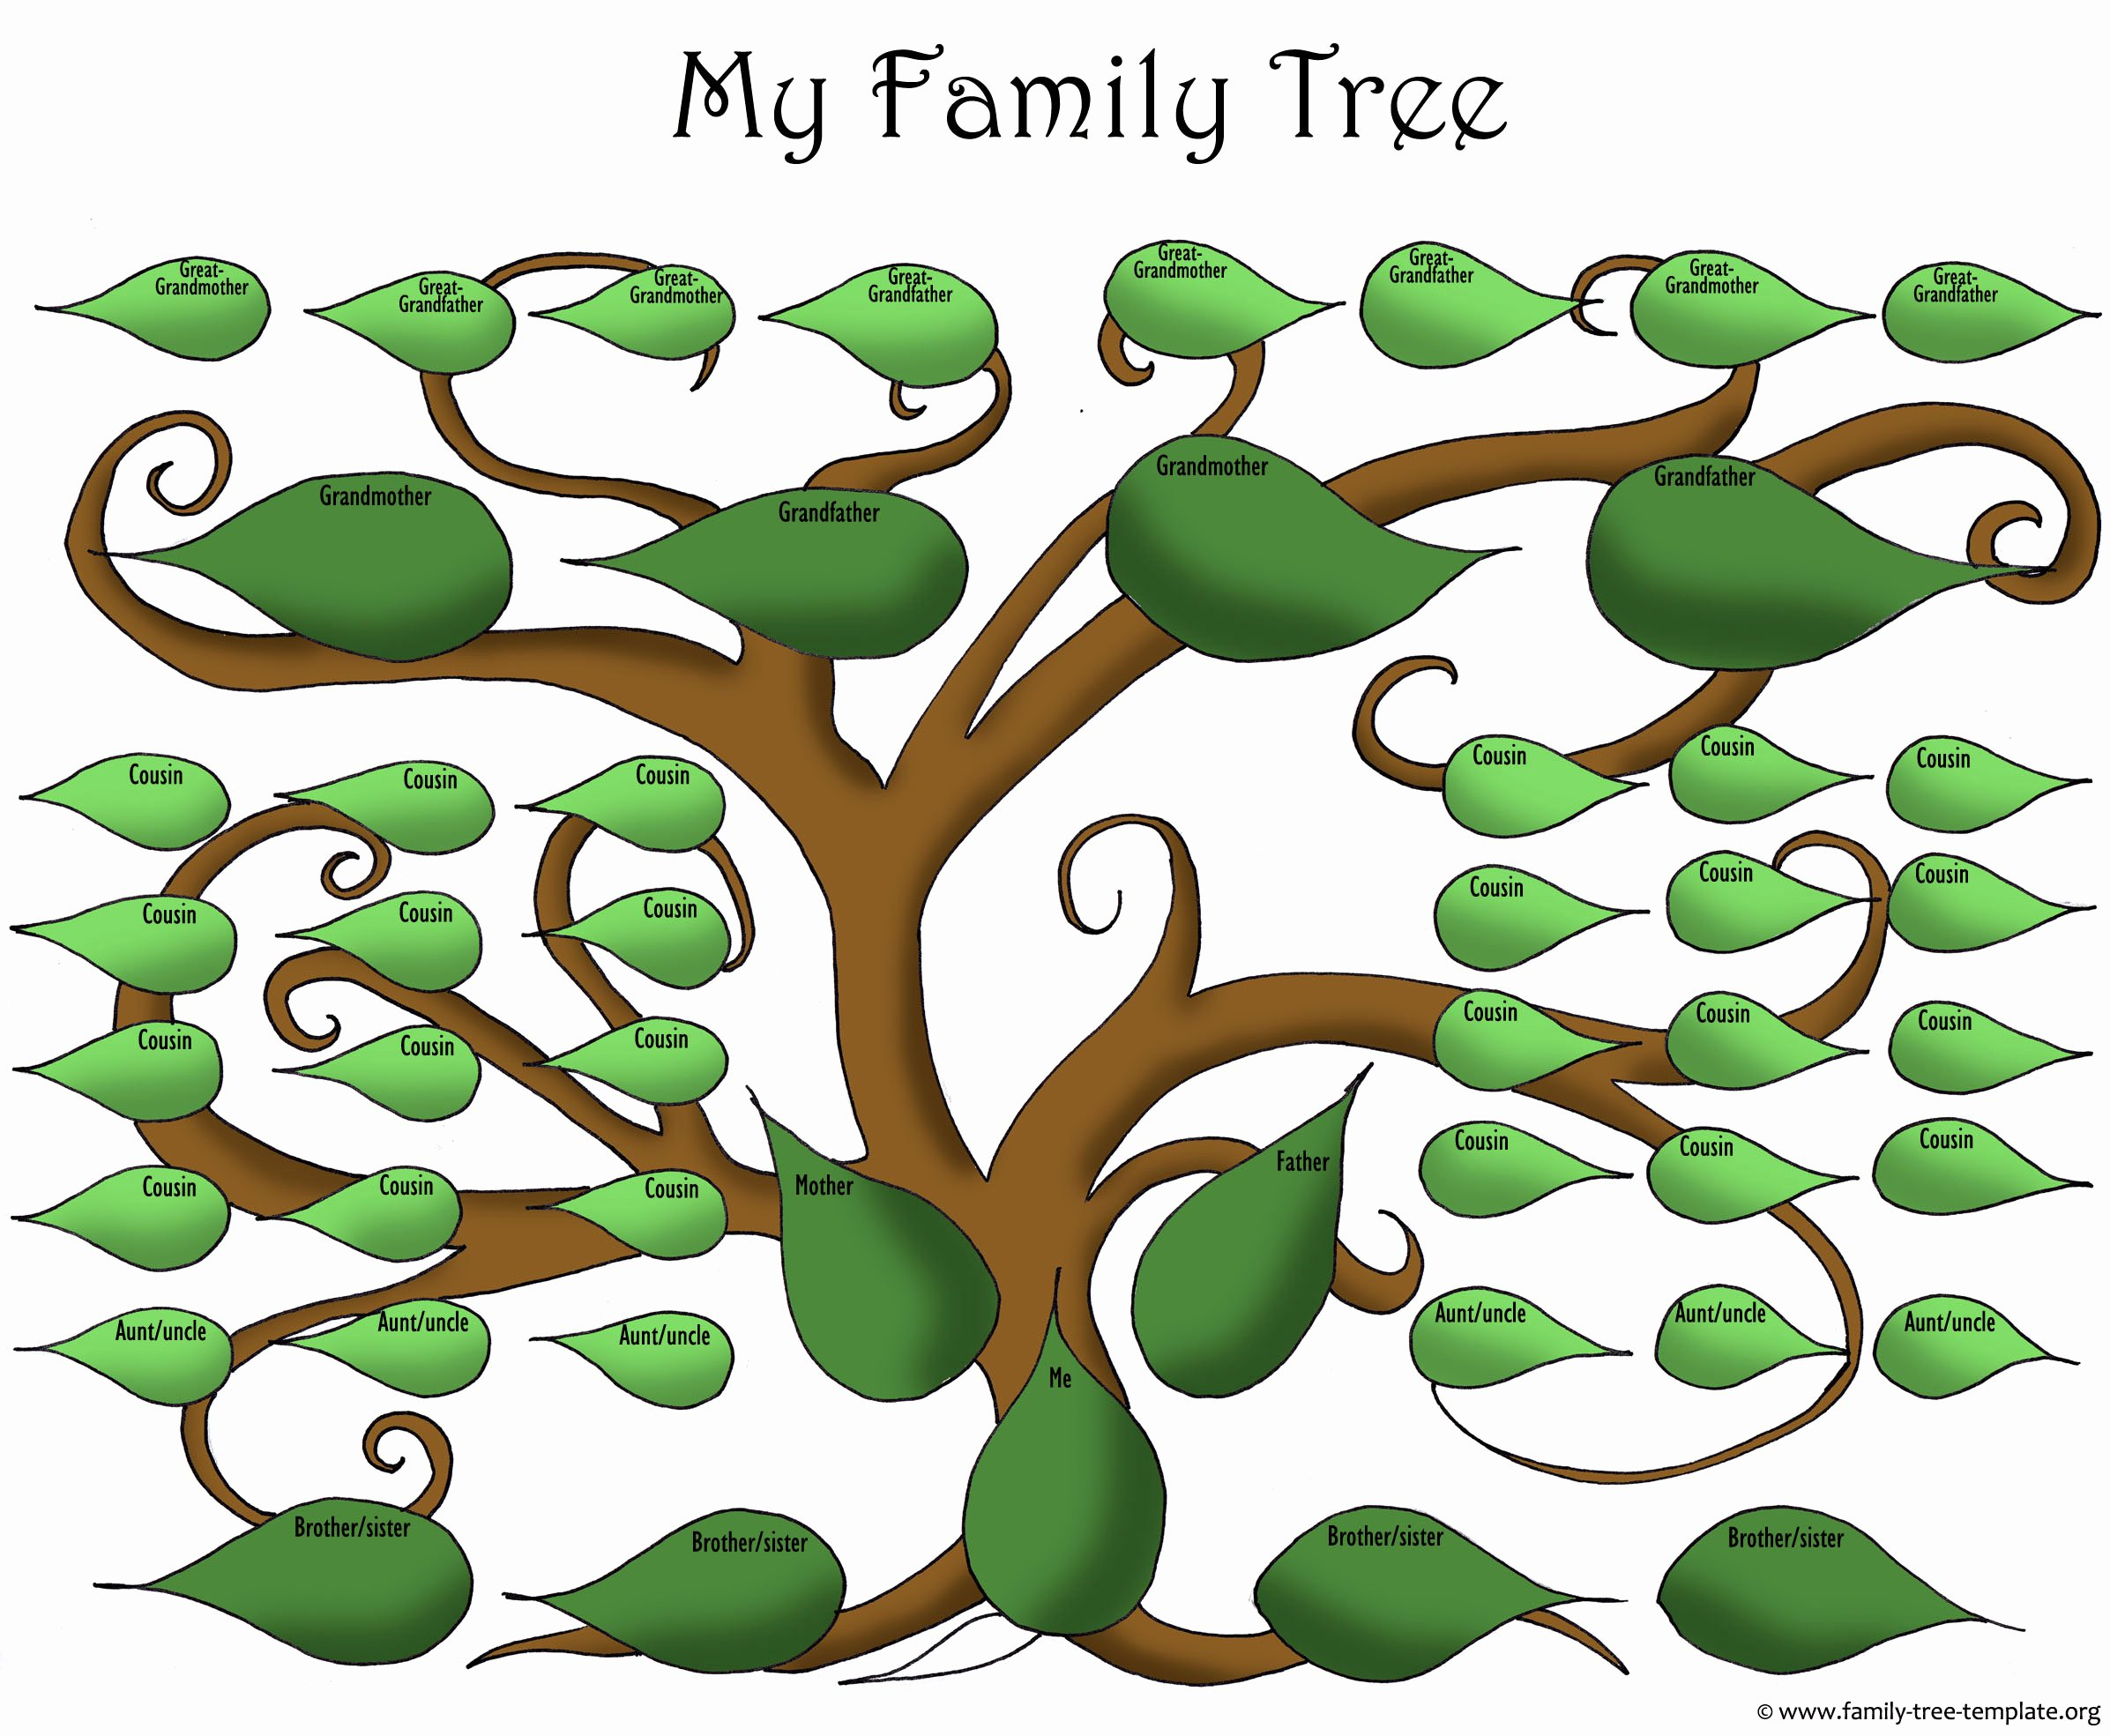 Printable Family Tree Charts New A Printable Blank Family Tree to Make Your Kids Genealogy